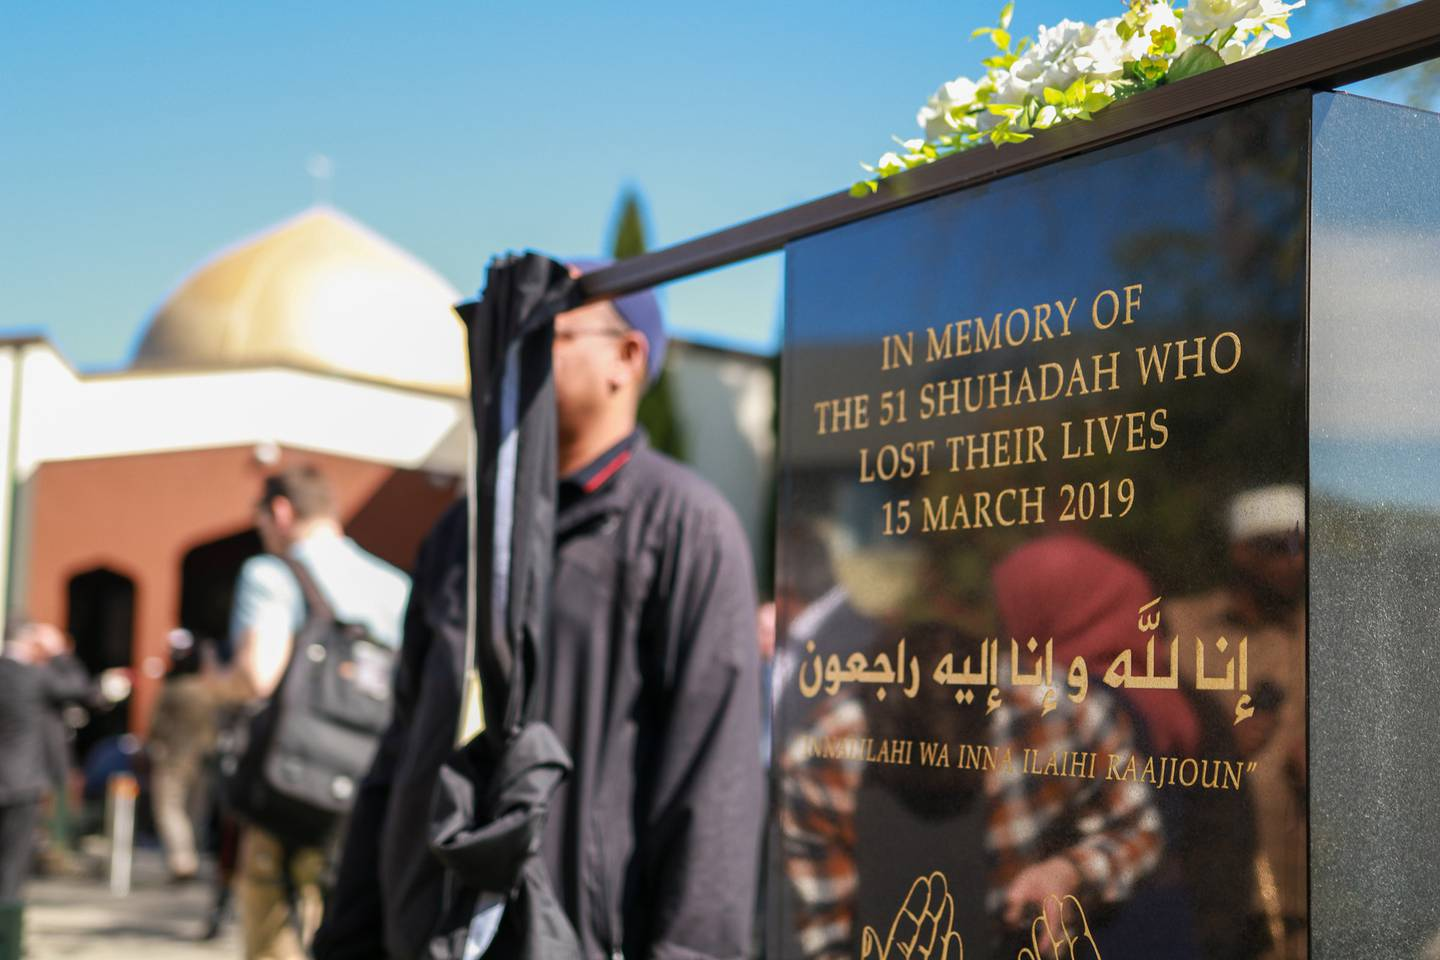 A plaque at the Al-Noor Mosque in Hagley Park, Christchurch, honours the 51 people who lost their lives on 15 March 2019.